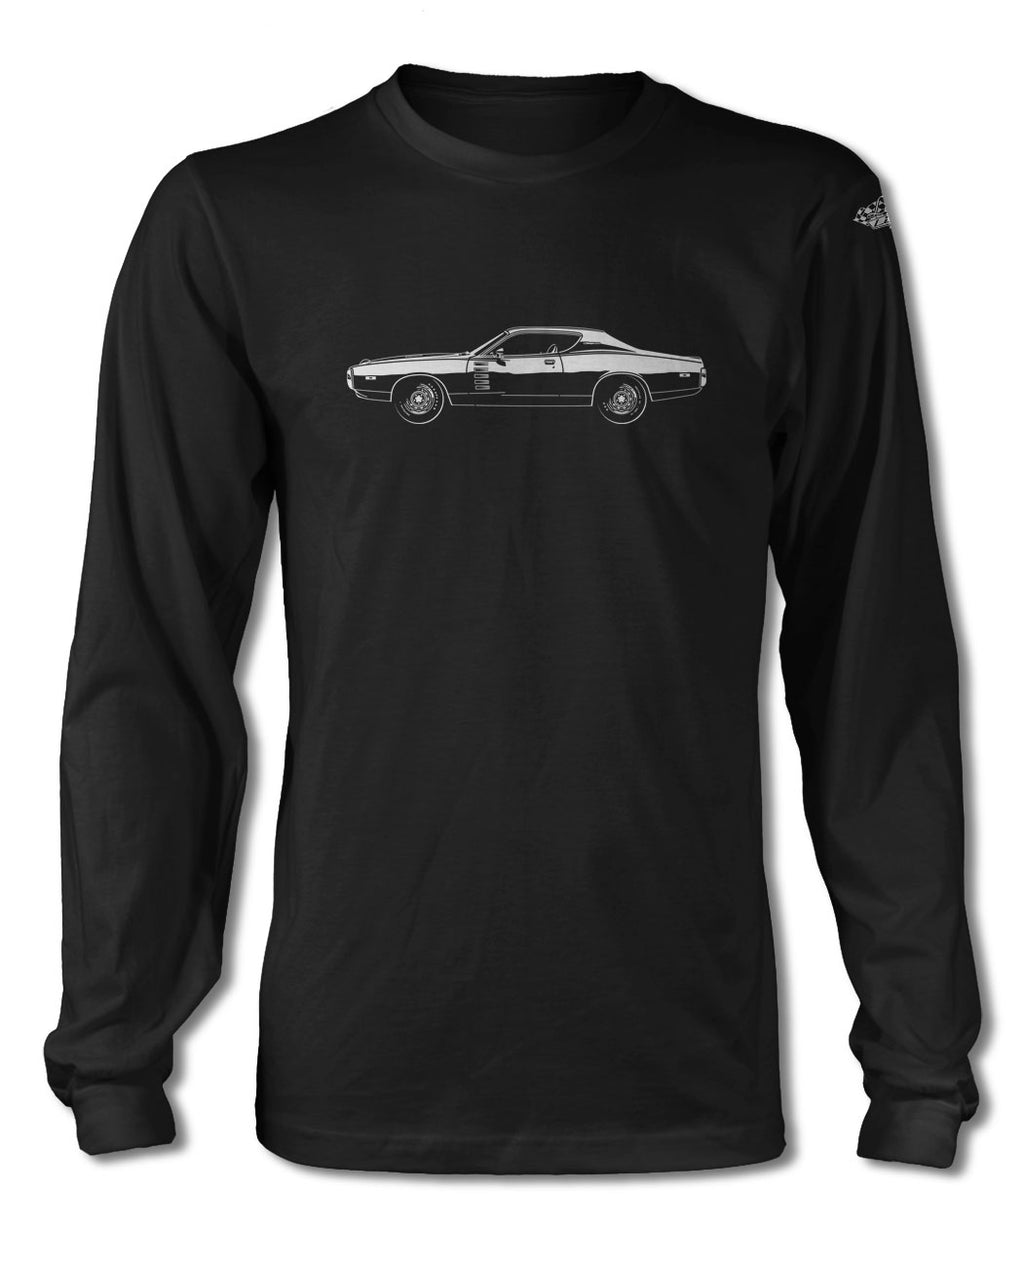 1972 Dodge Charger Rallye Coupe T-Shirt - Long Sleeves - Side View